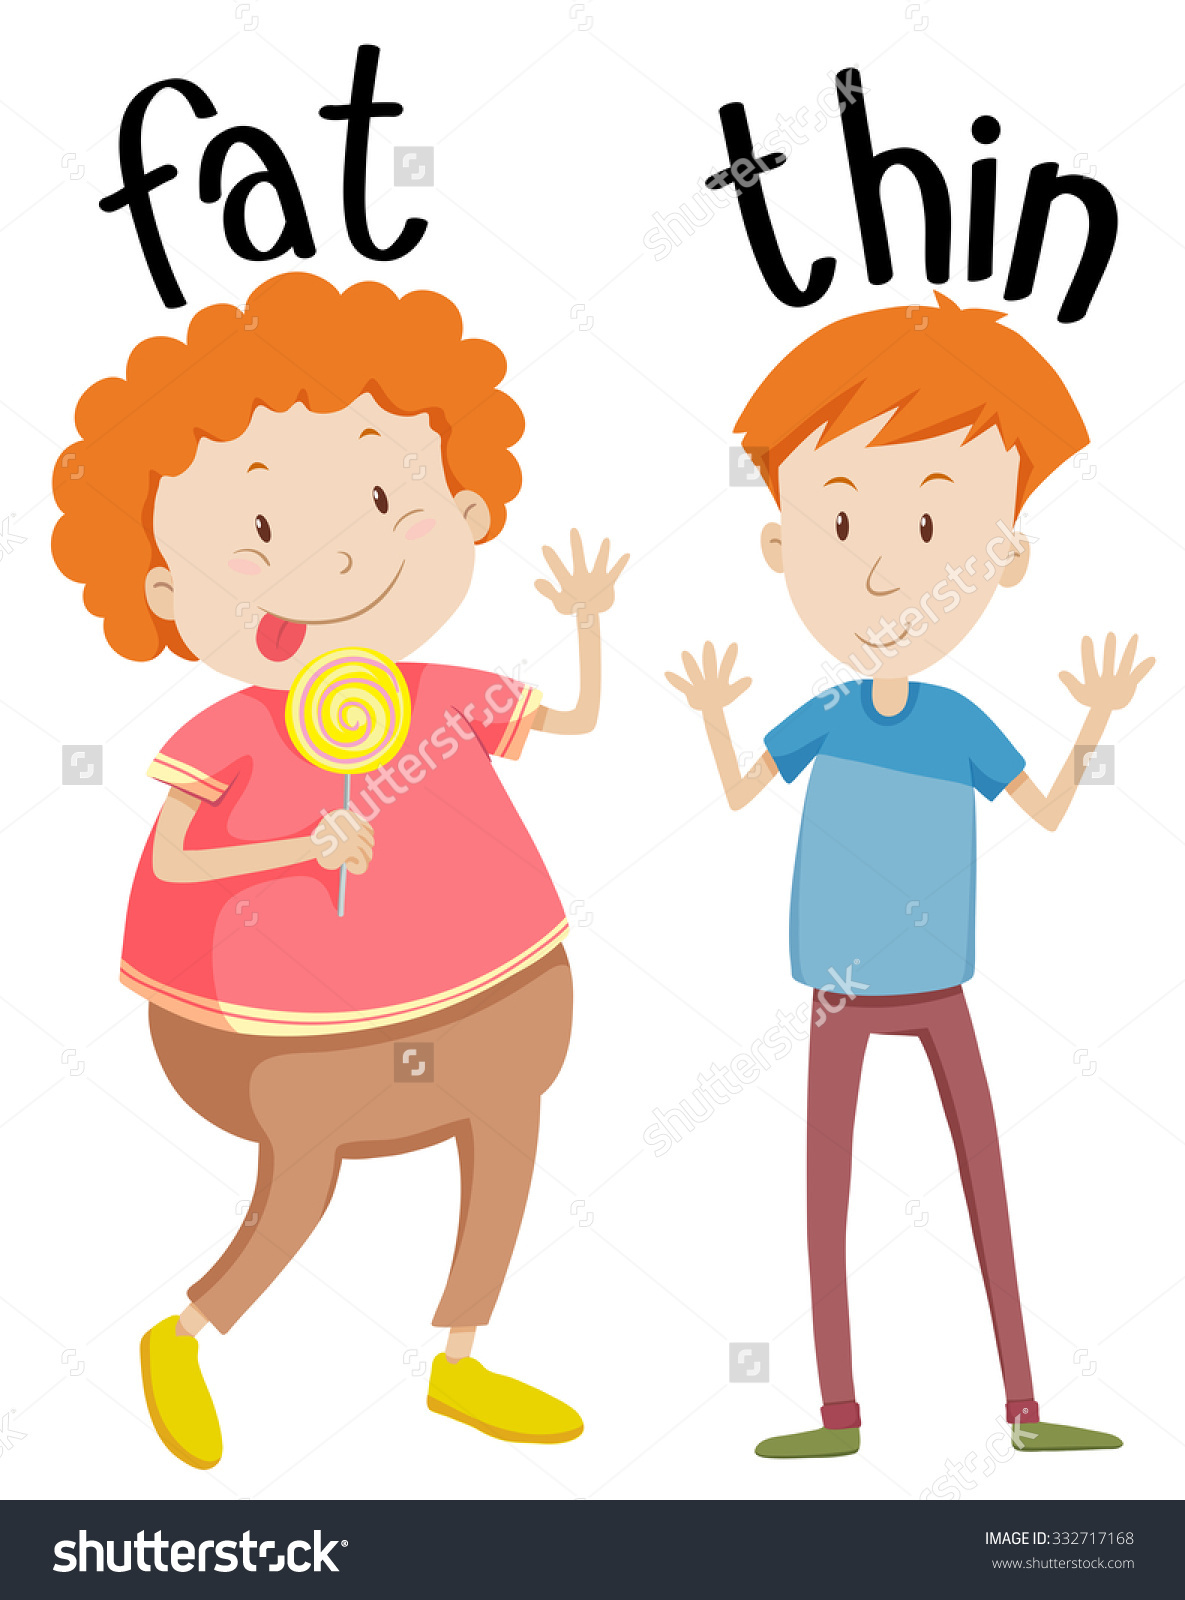 Fat and thin clipart banner transparent library Fat thin clipart - ClipartFest banner transparent library